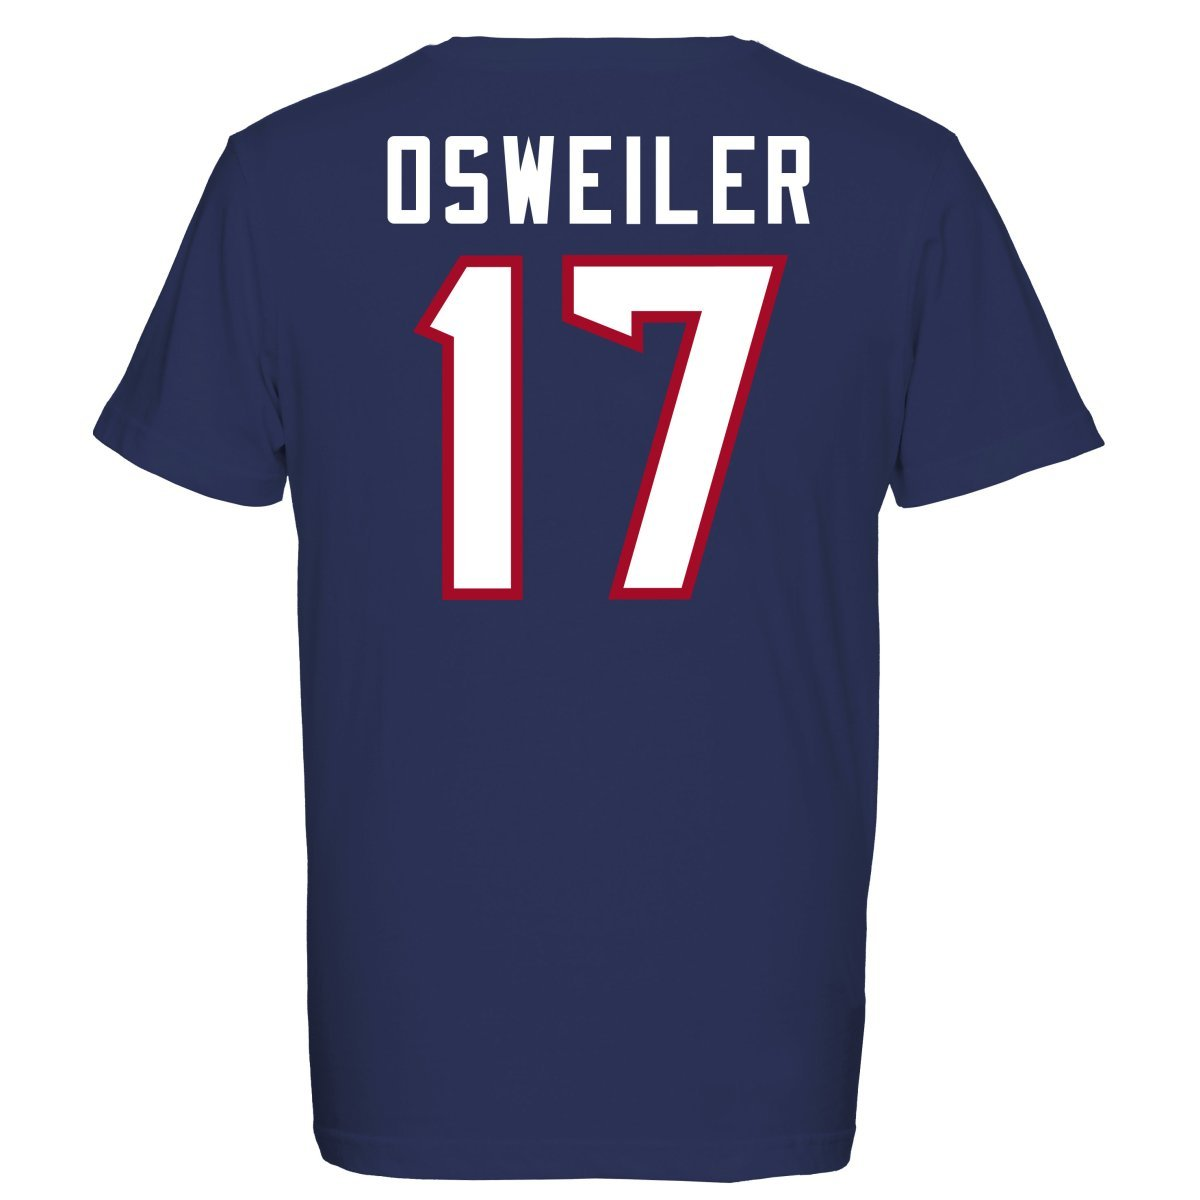 Majestic NFL Fan Camiseta - Houston Texans 17 Brock osweiler, hombre, azul marino, small: Amazon.es: Deportes y aire libre